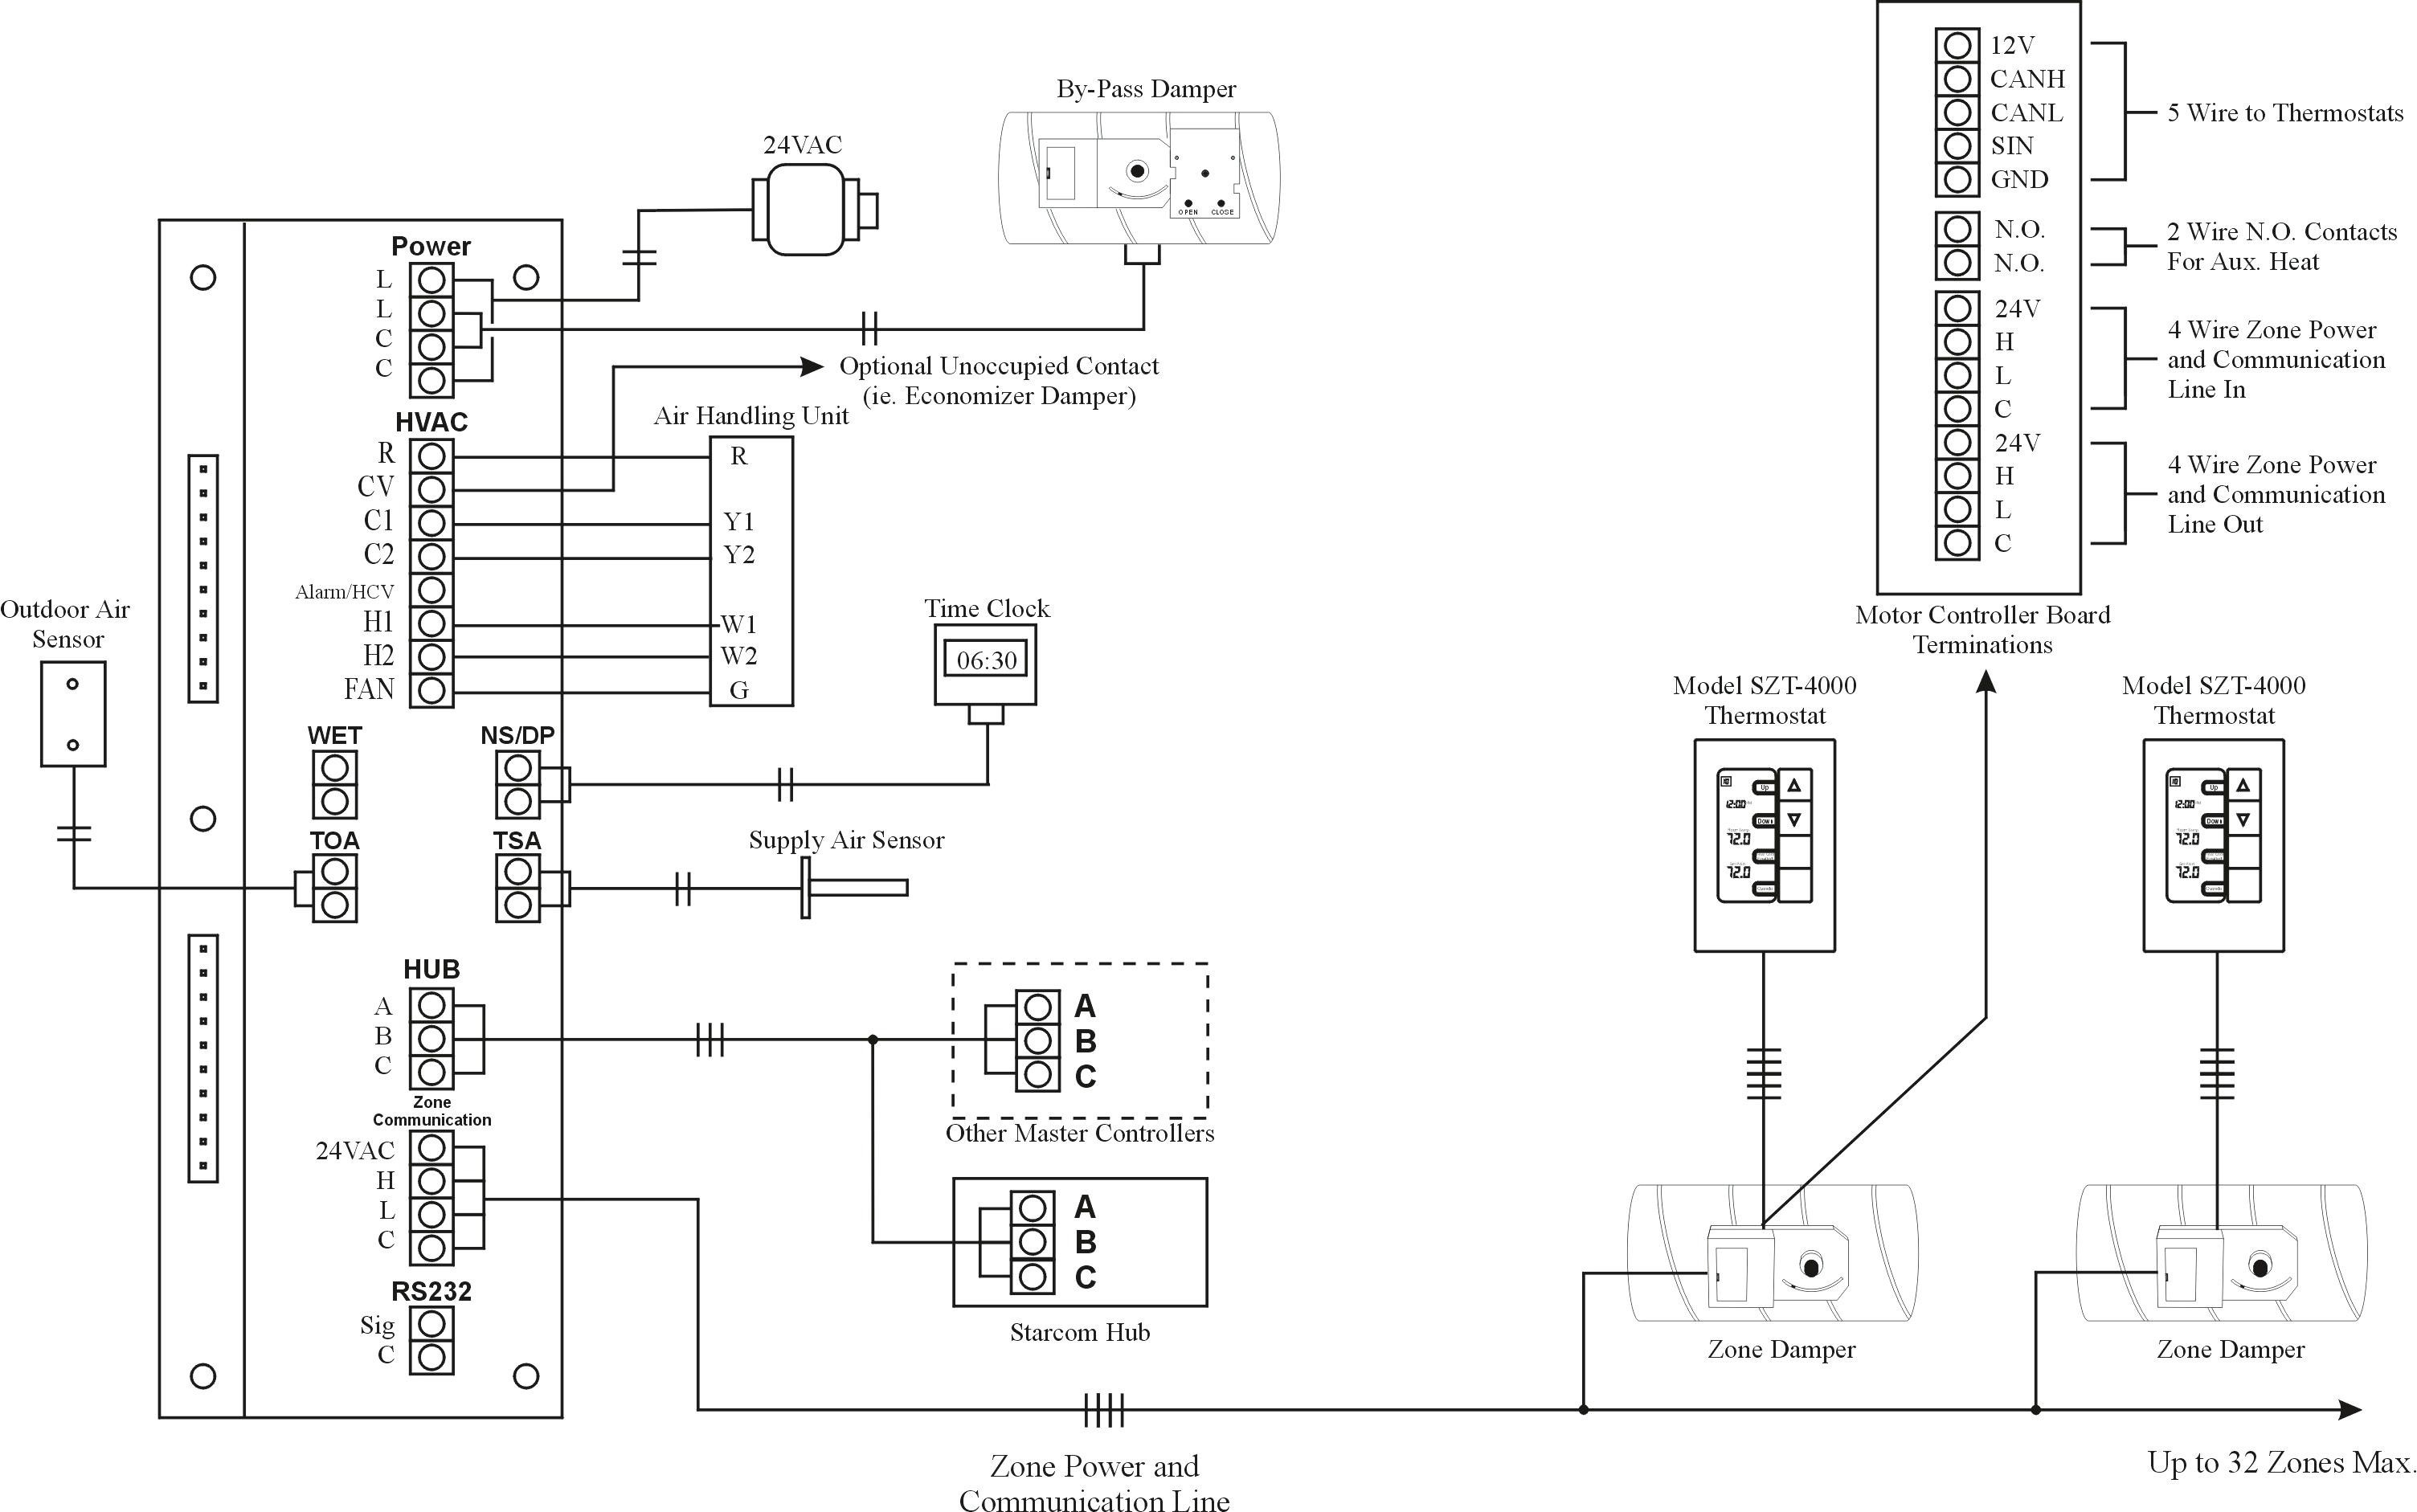 Herrmidifier Wiring Diagram Libraries Philips 40pfl3606 Lcd Tv Power Supply Schematic Electro Help Totaline Third Leveltotaline P270 3000pl Diagrams Source 1